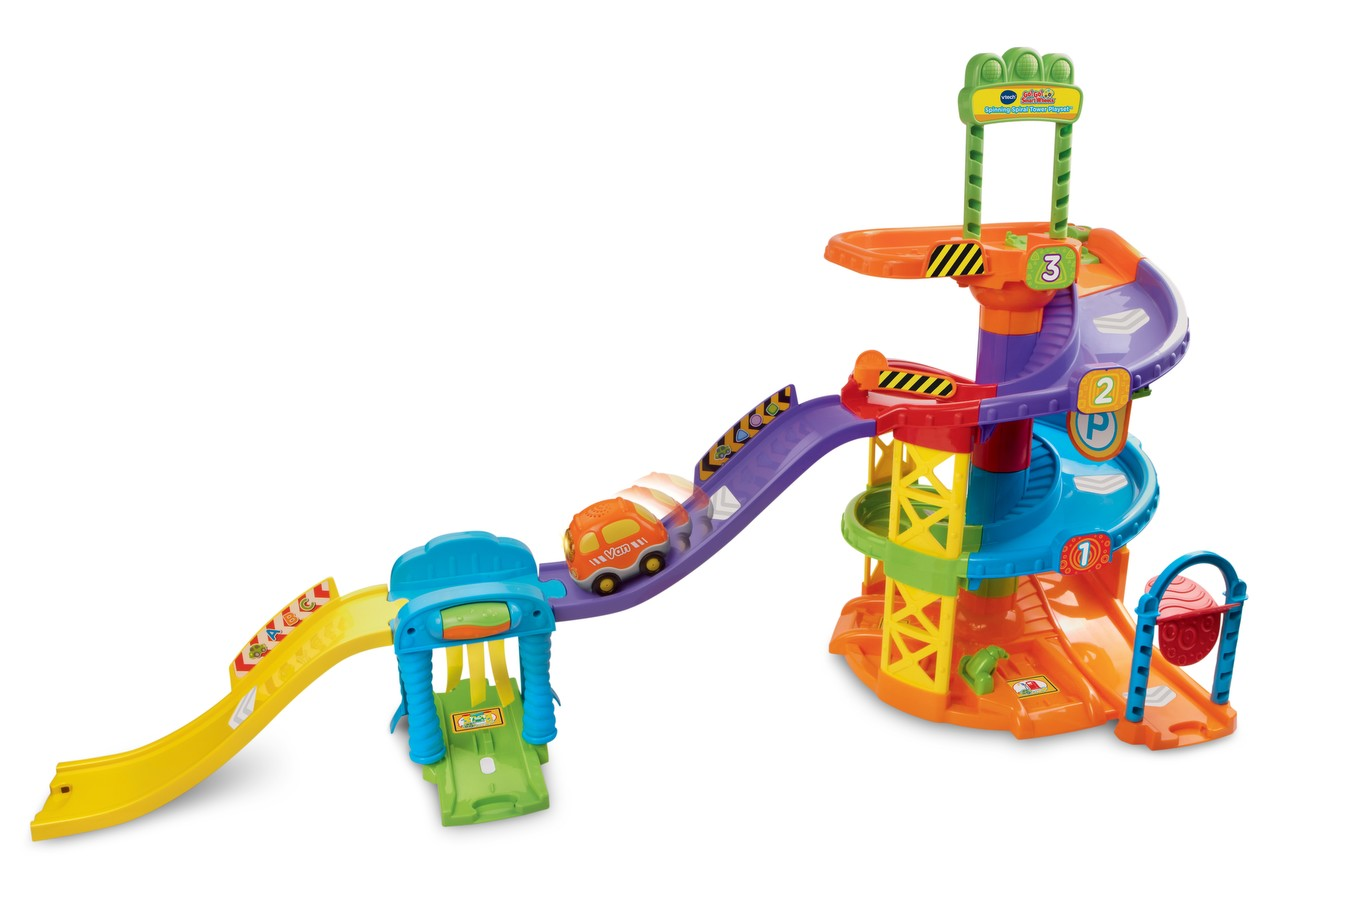 spinning spiral tower playset instructions